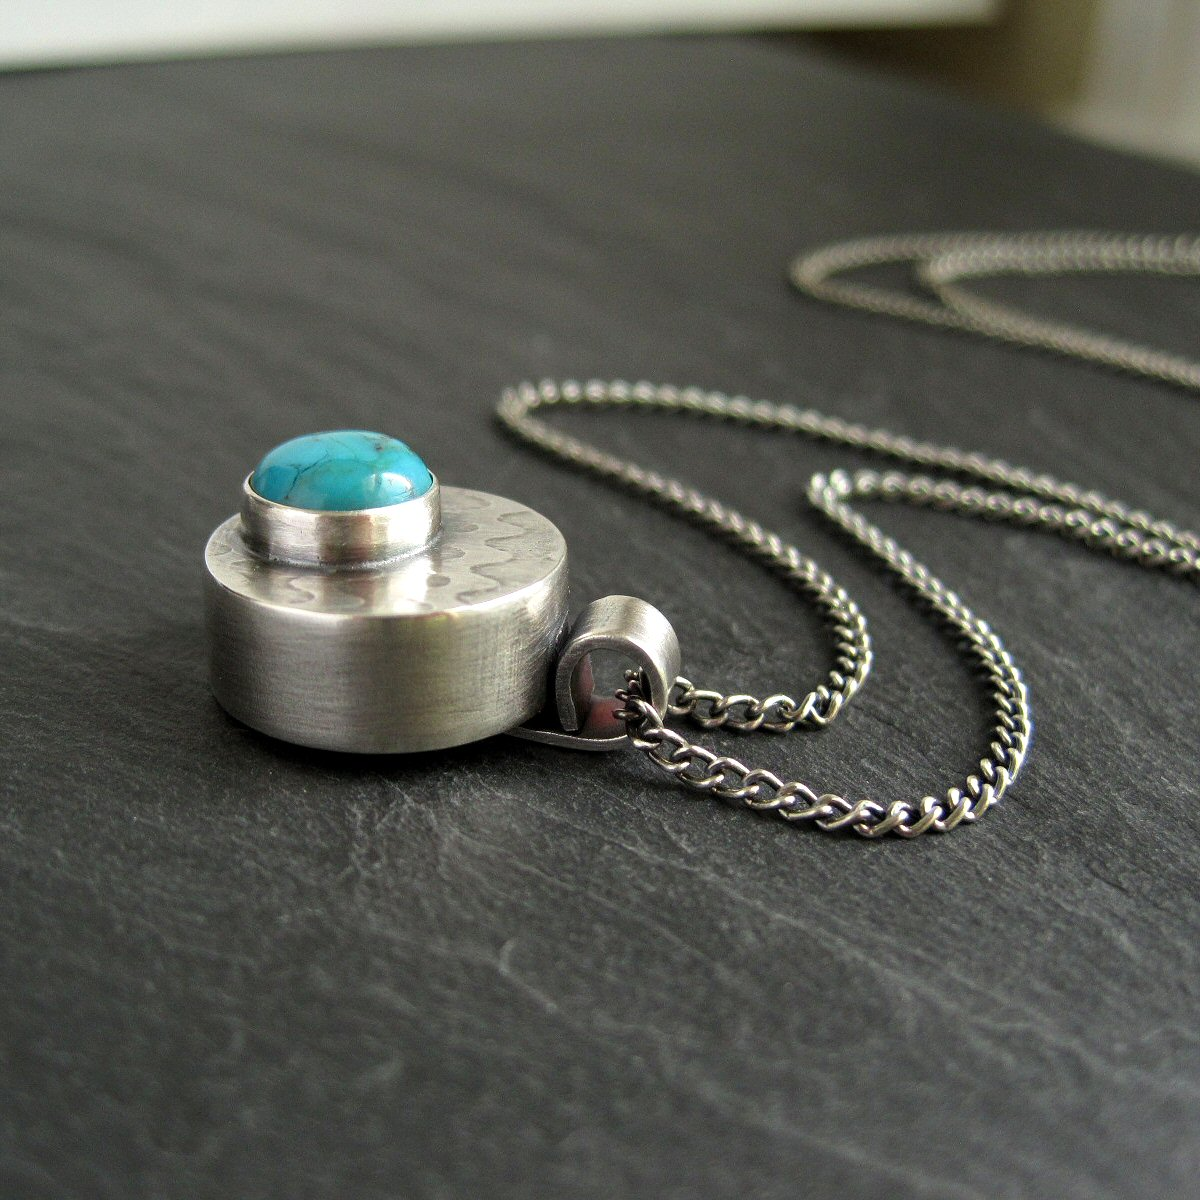 Making A Hollow Form Pendant With Turquoise Cabochon